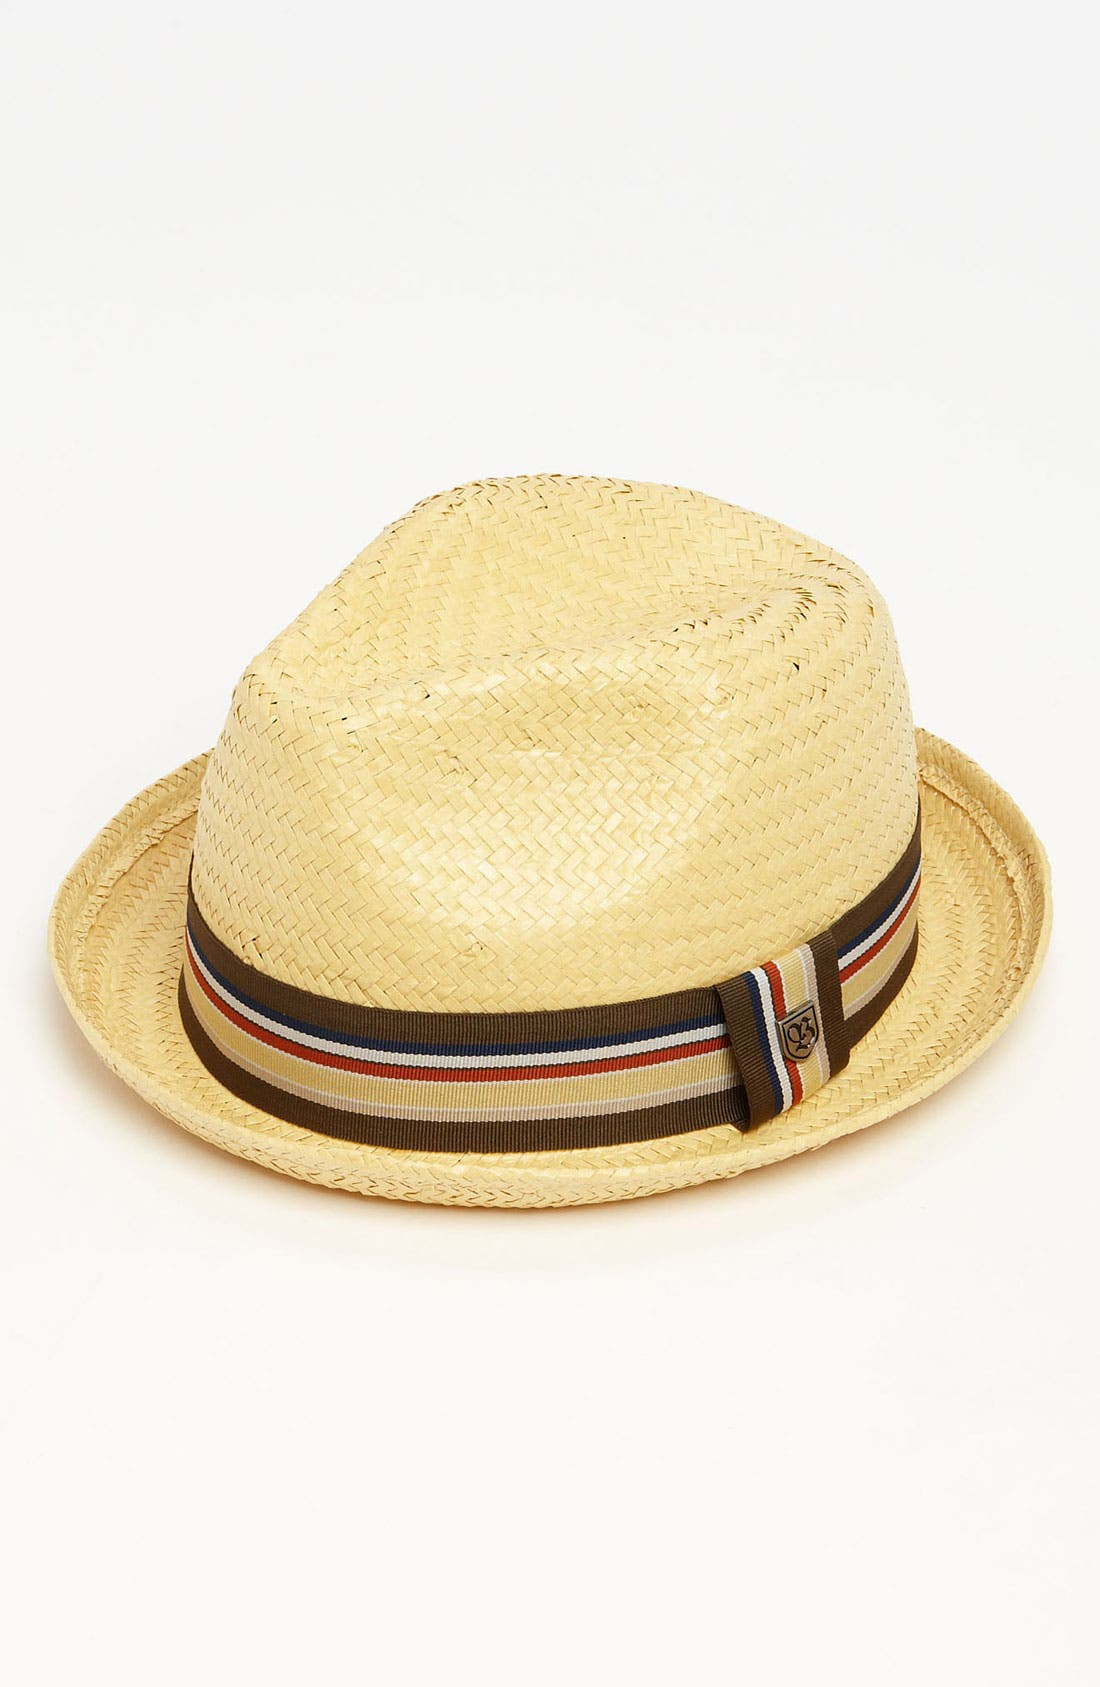 Alternate Image 1 Selected - Brixton 'Castor' Straw Fedora